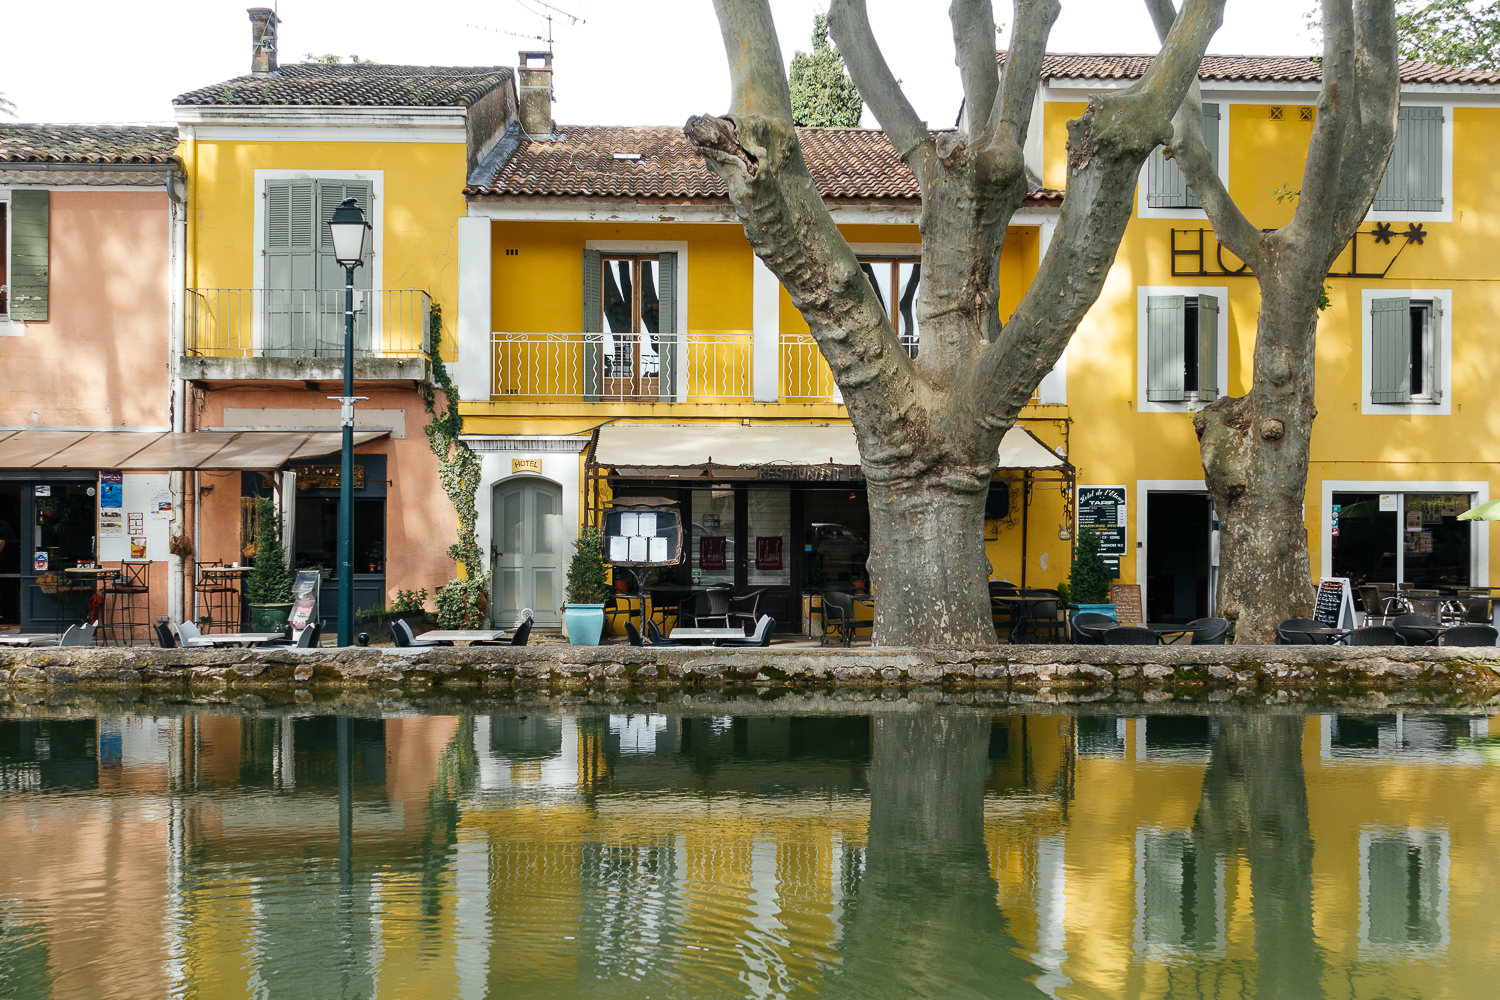 Cucuron and its spring-fed pool in the center of town.